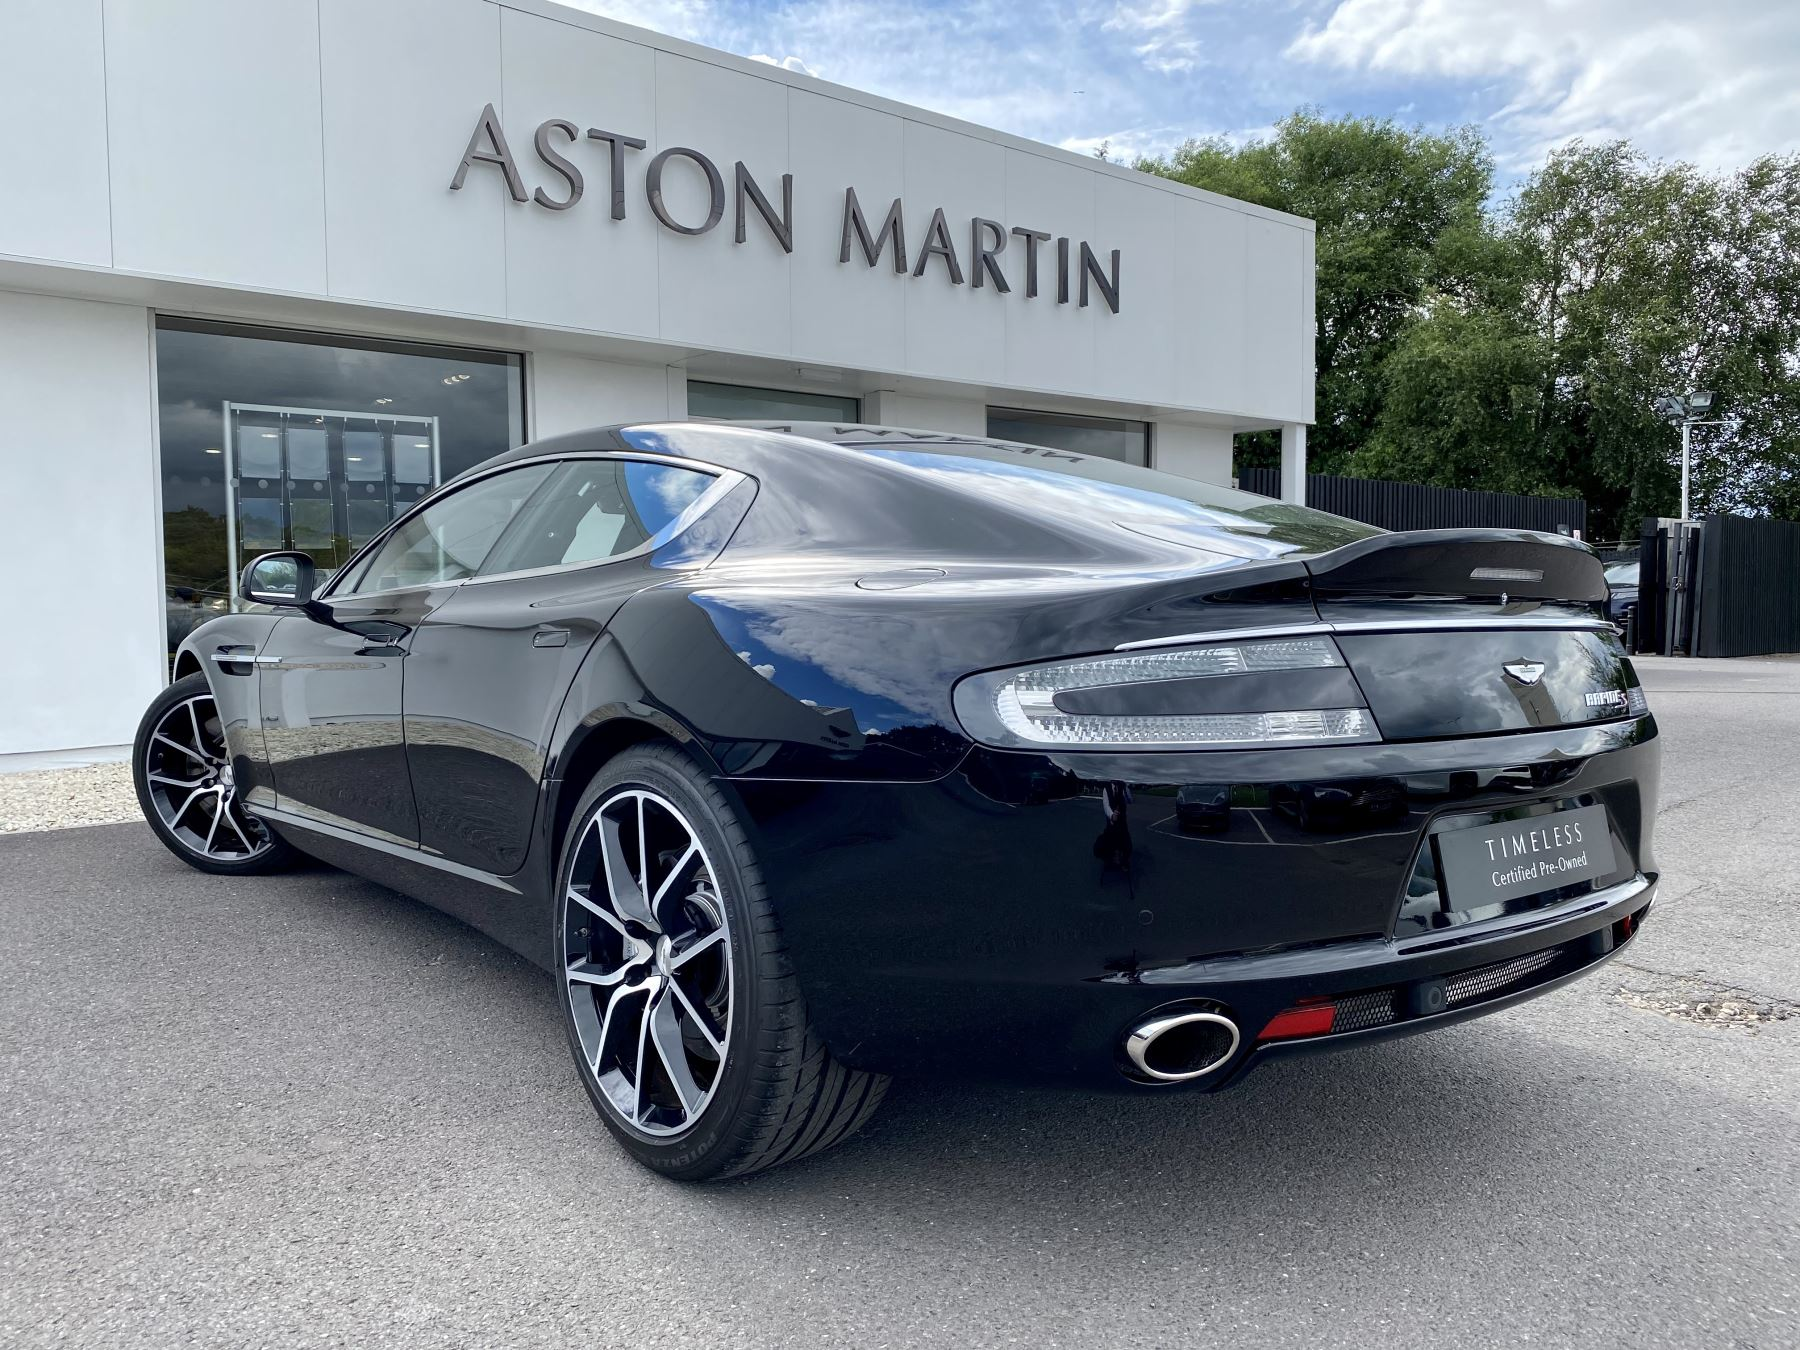 Aston Martin Rapide S V12 [552] 4dr Touchtronic III 8 Spd, Onyx Black And Obsidian Black Leather, Rear Seat Entertainment. image 5